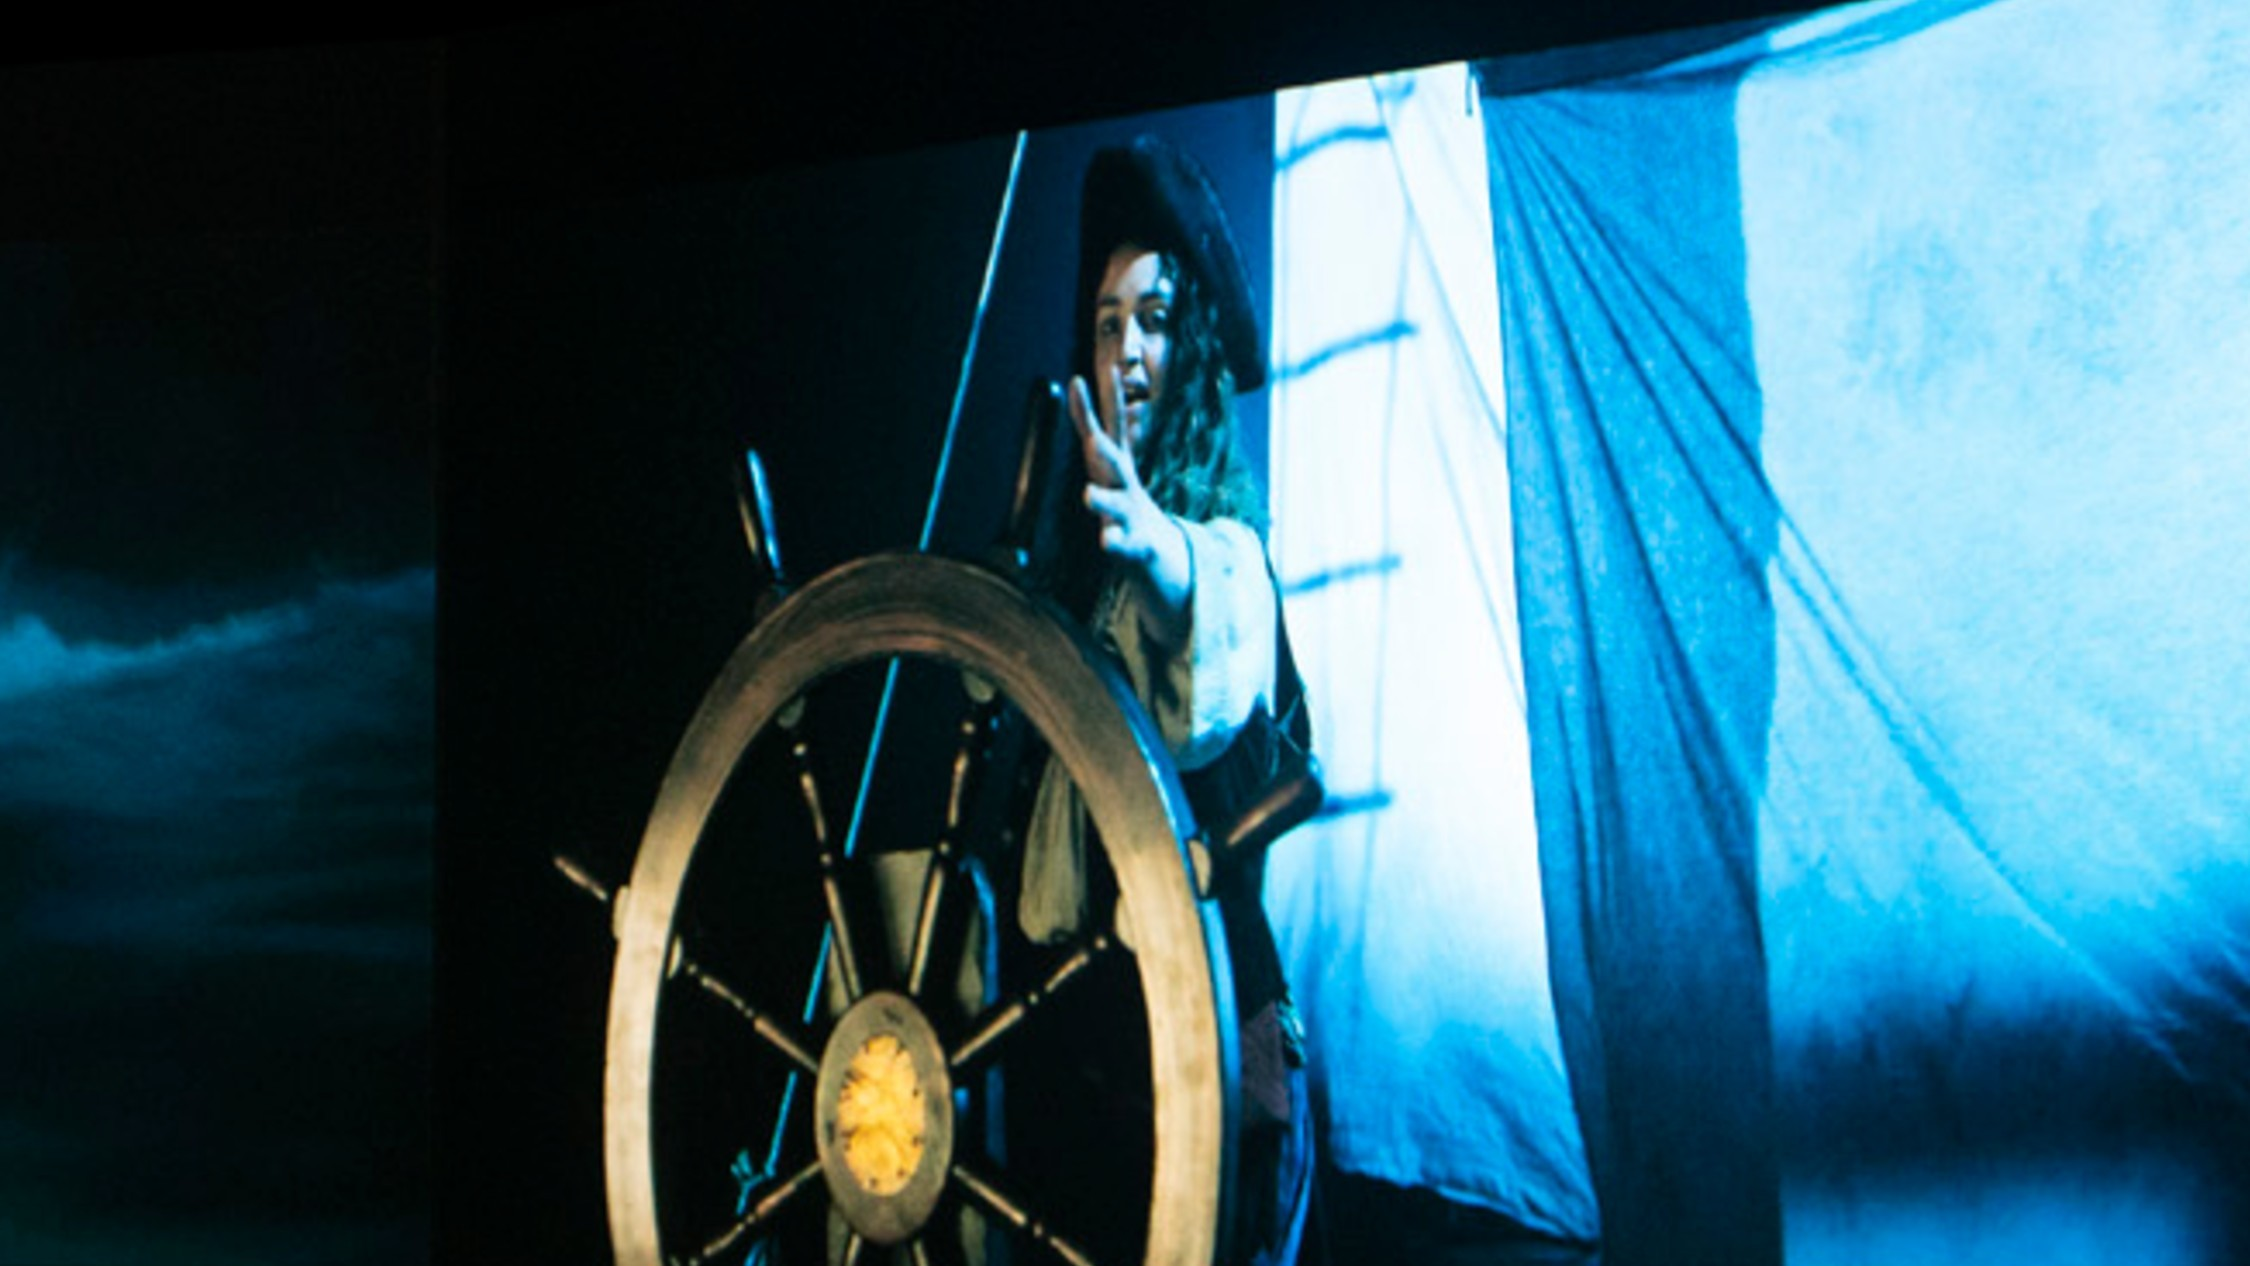 A still from  Lisa Reihana 'Nomads of the Sea' depicting a female captain at the wheel of a ship